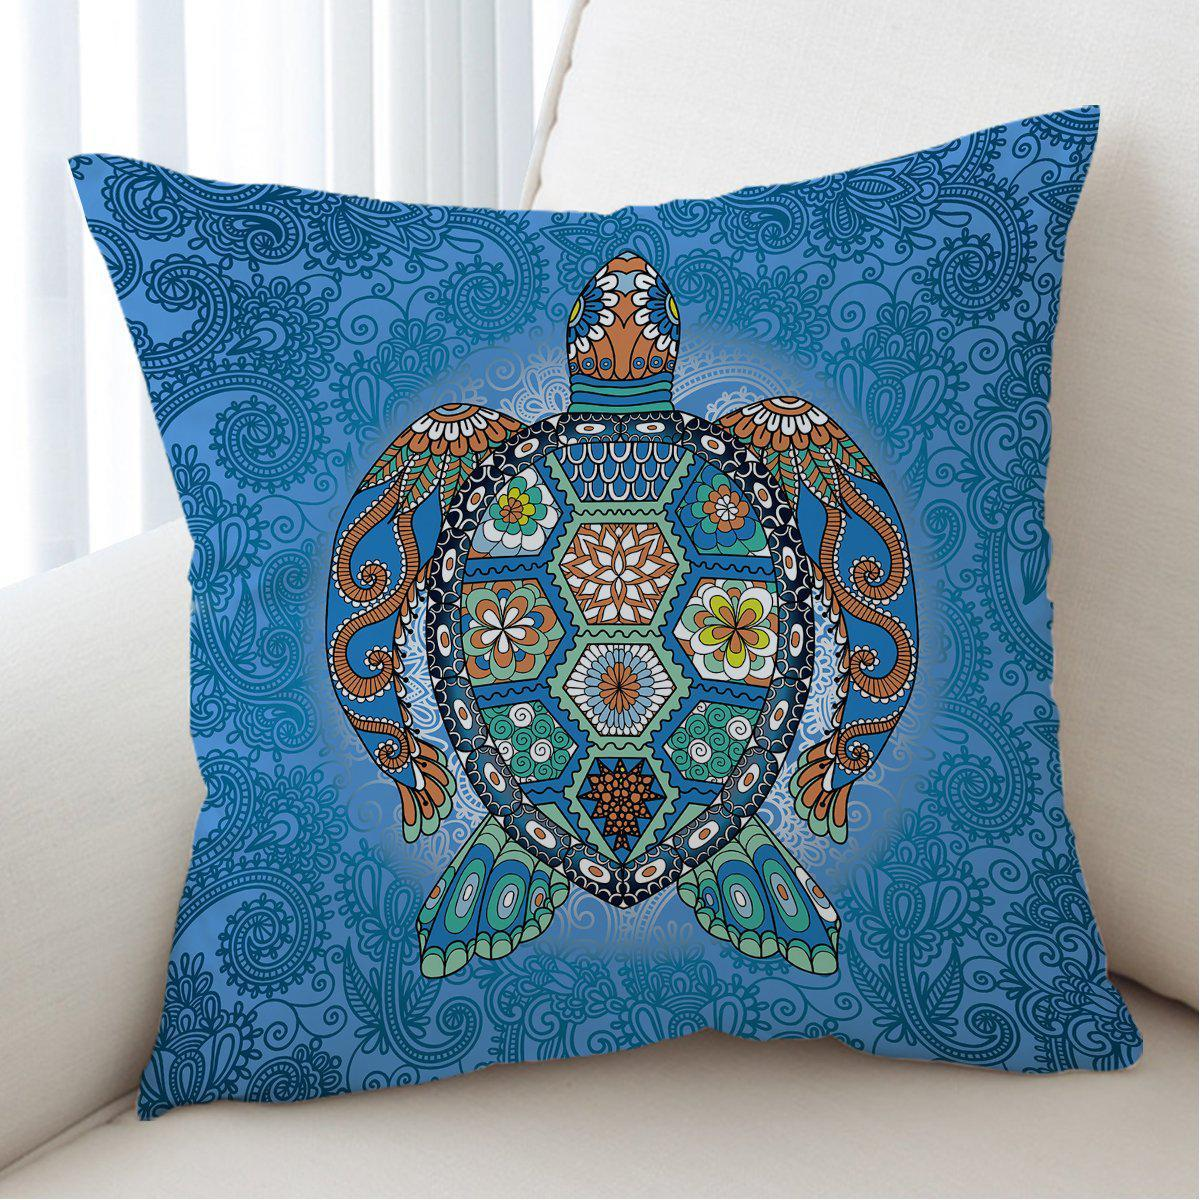 The Turtle Totem Pillow Cover-Coastal Passion